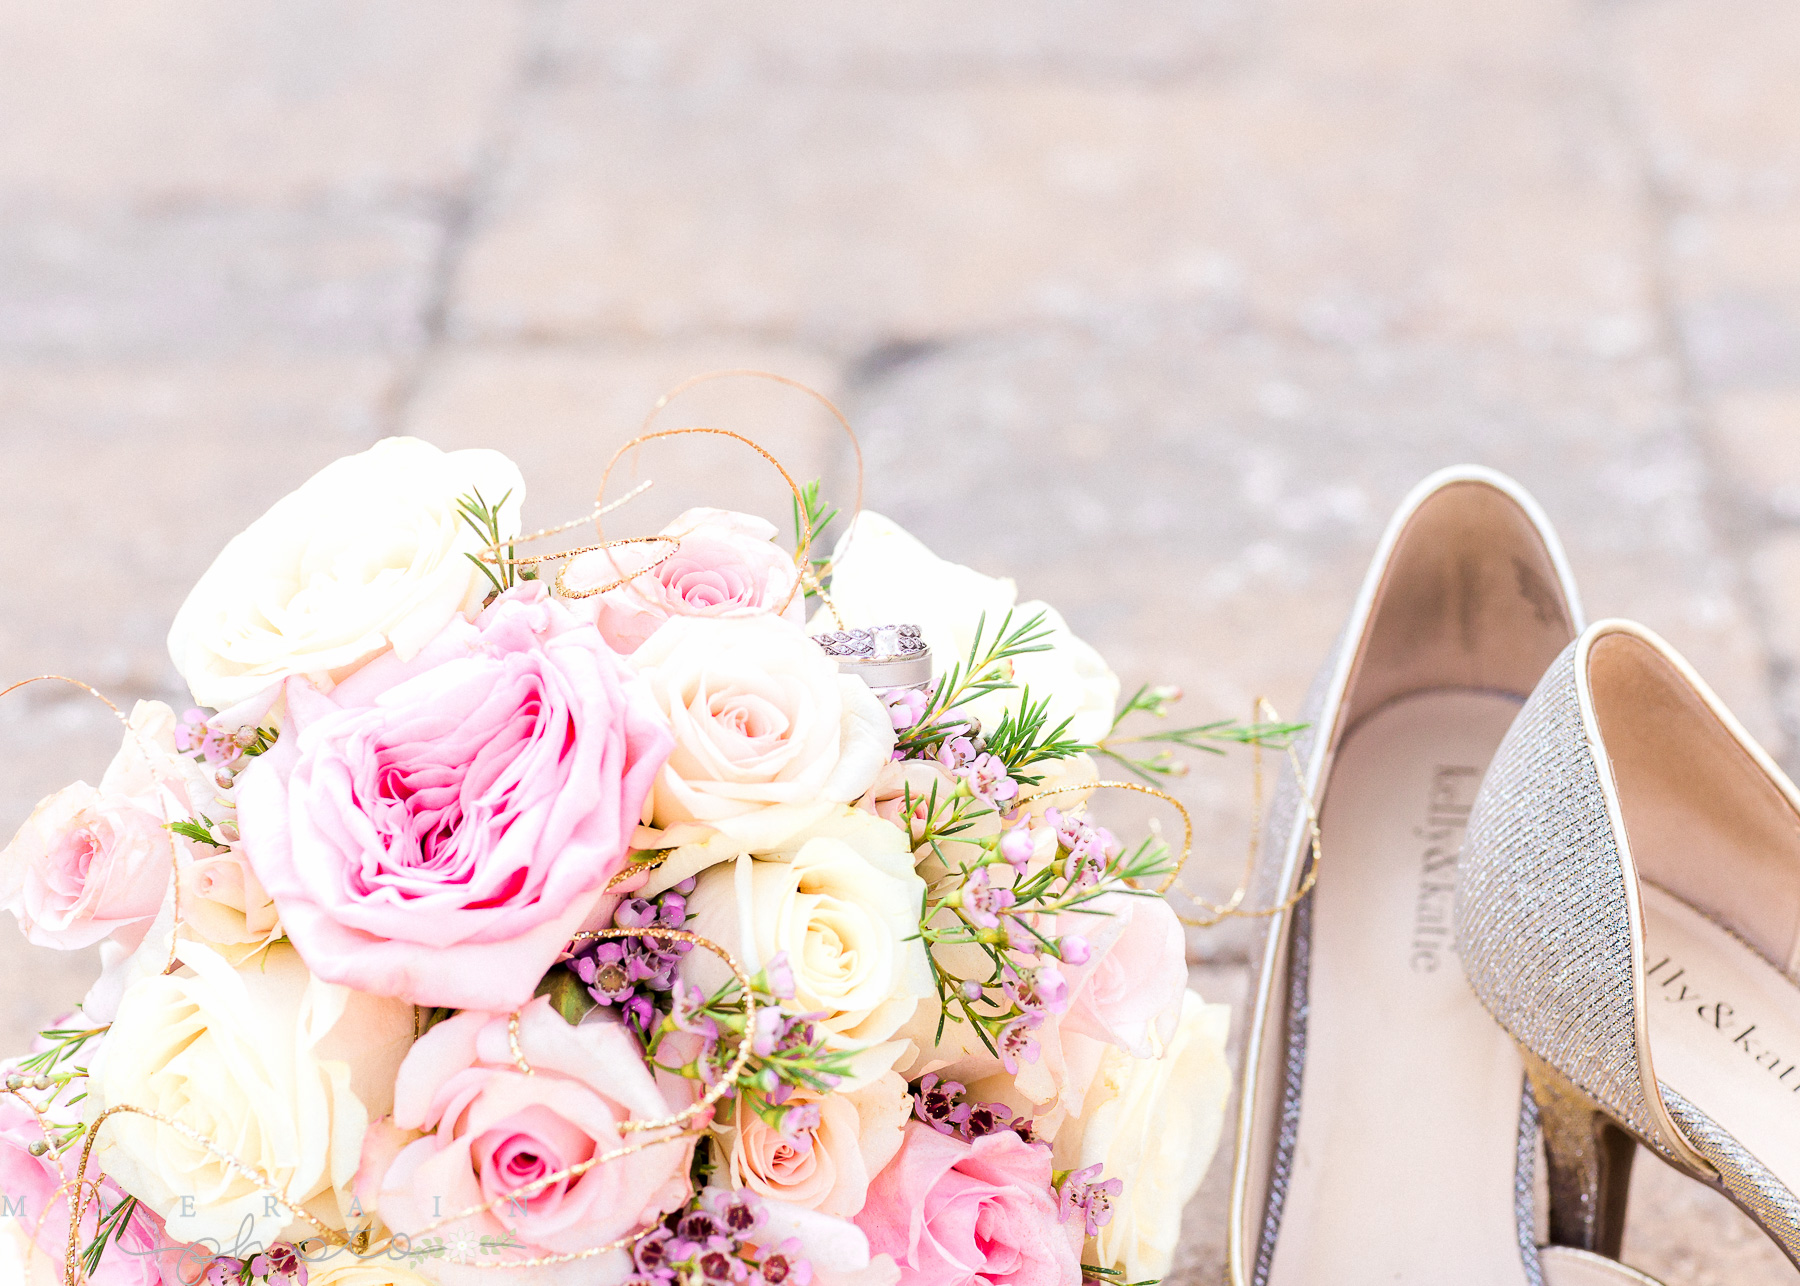 flowers ring and wedding shoes